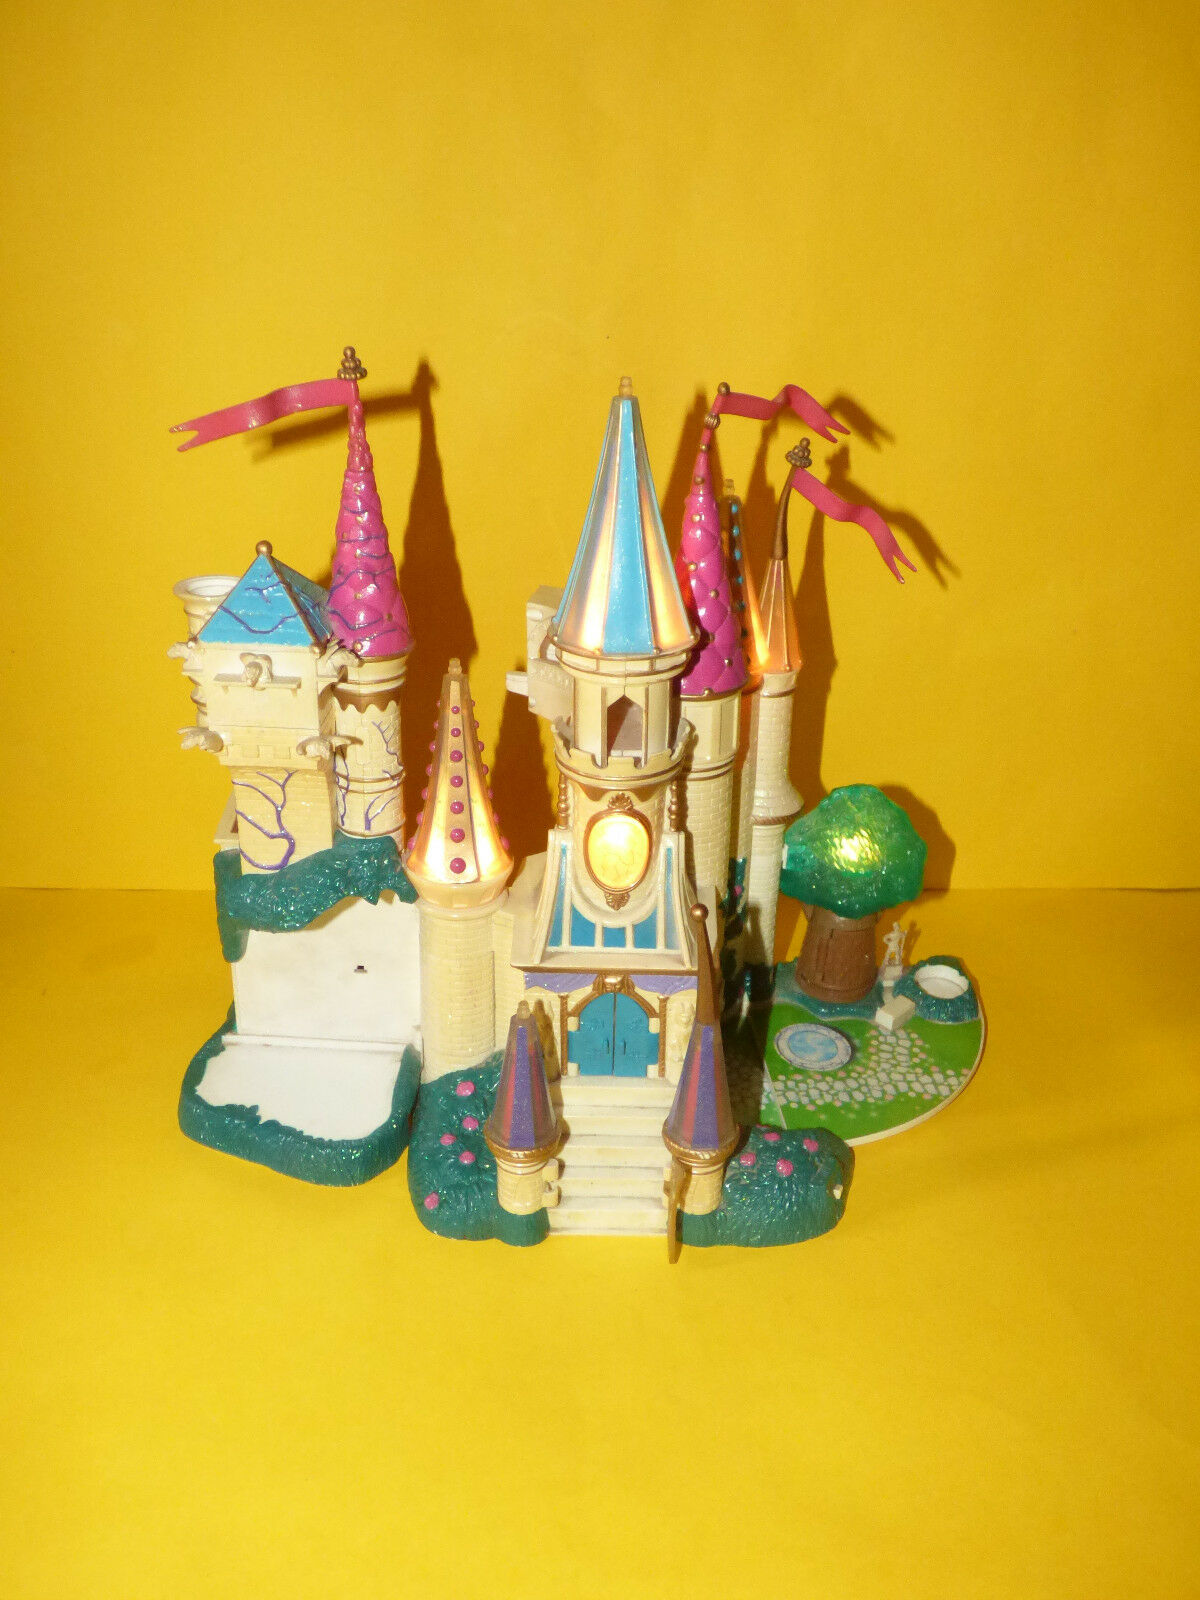 1998 Trendmasters Castle House Figures Beauty and the Beast Polly Pocket Style